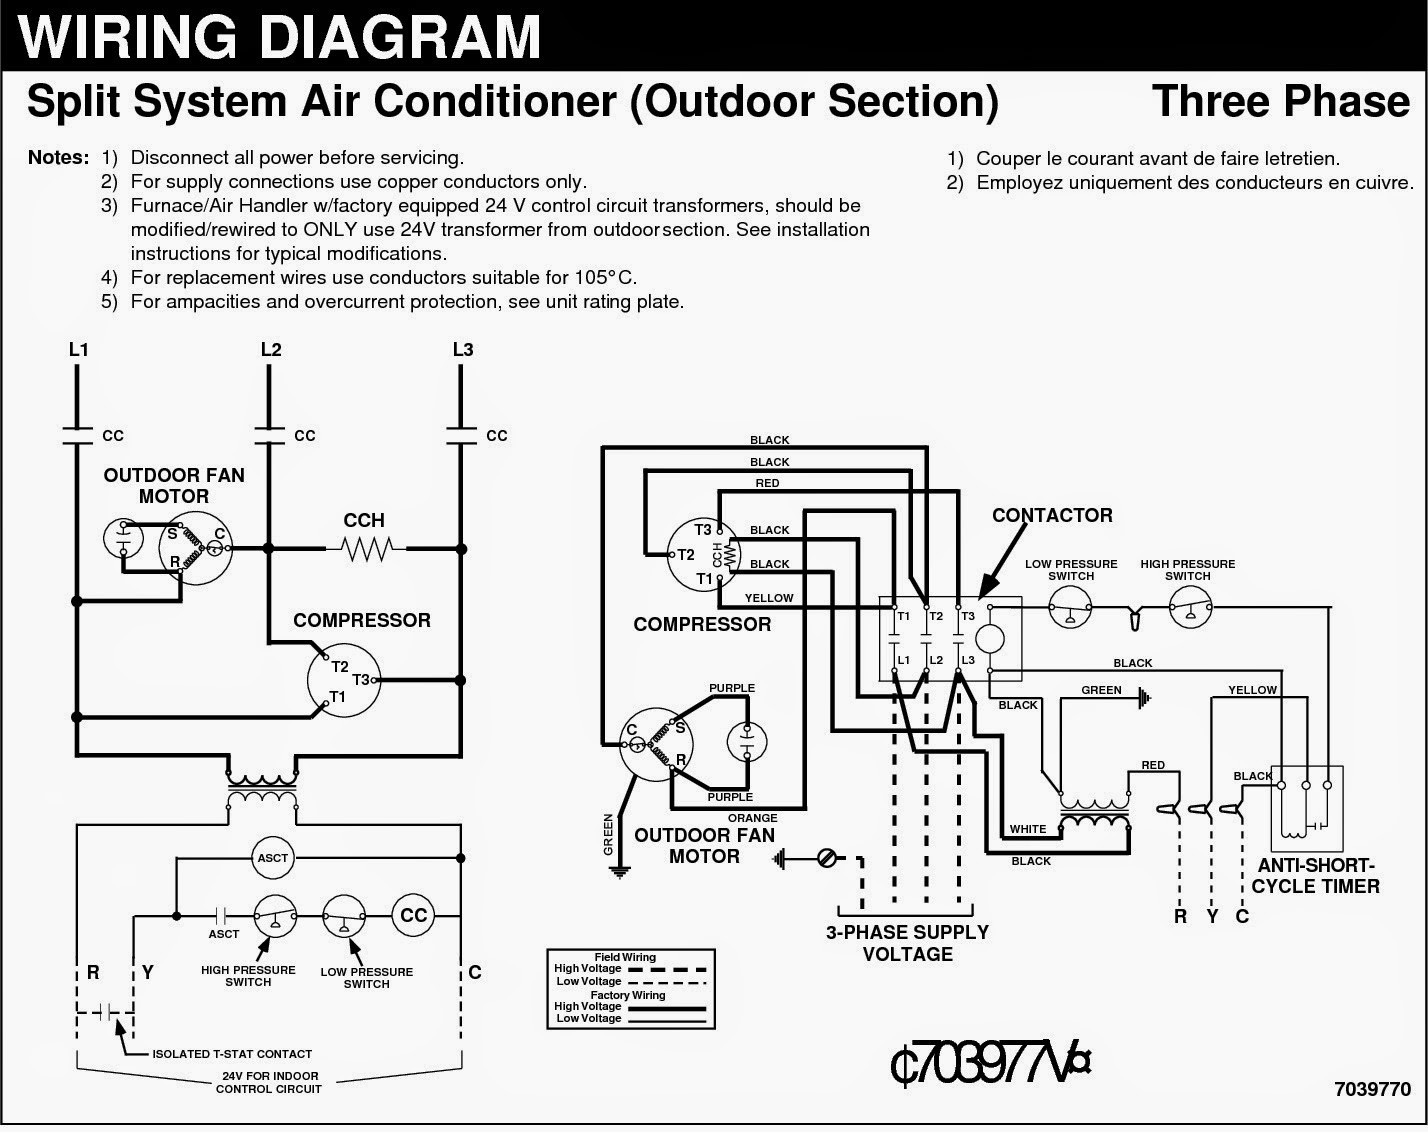 Hvac Indoor Fan Motor Wiring Schematic Diagram Will Be A Ac Switch Electrical Diagrams For Air Conditioning Systems Condenser